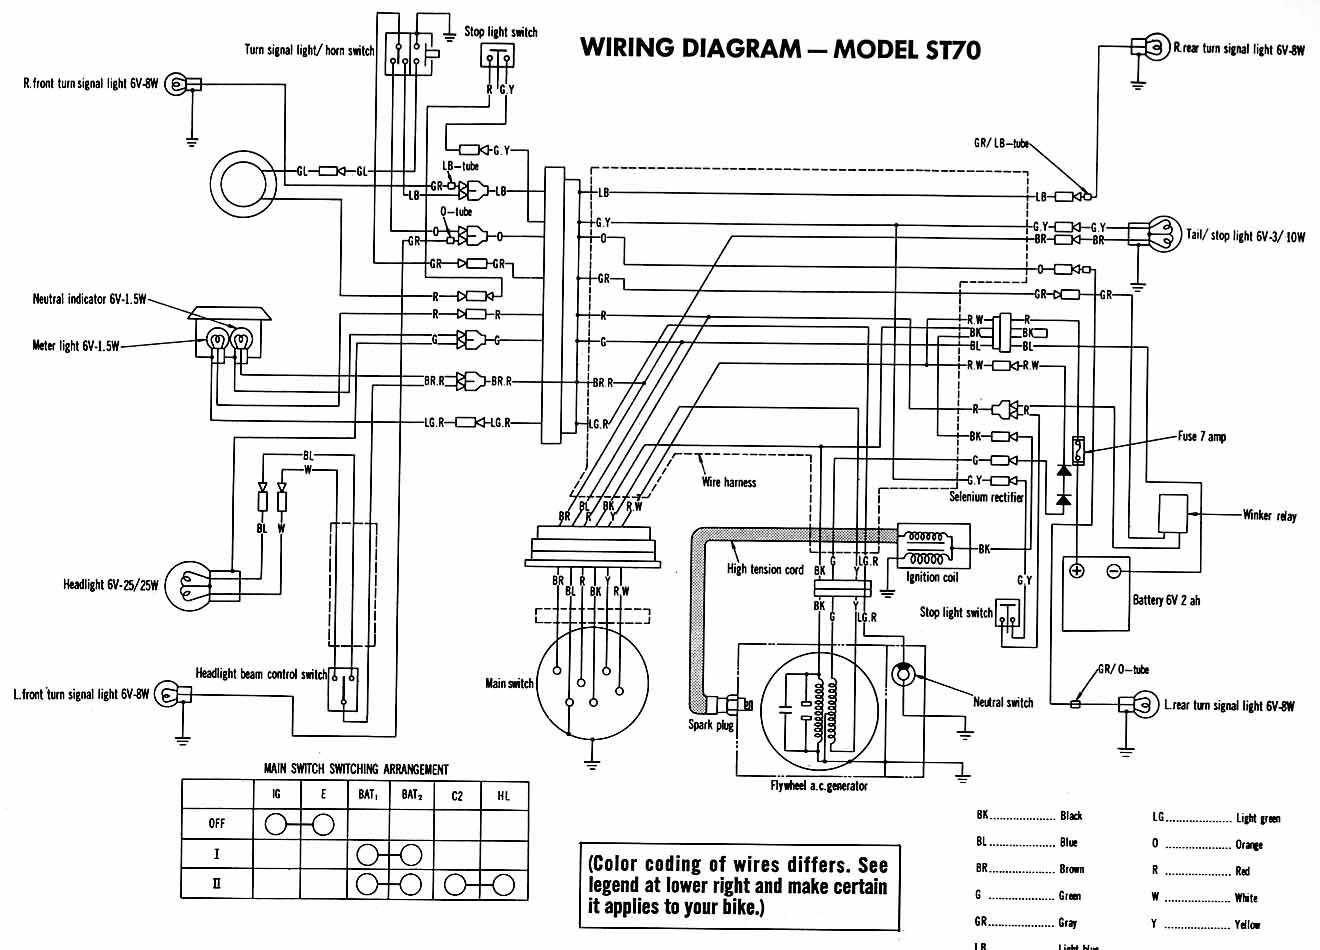 honda wire diagram honda wiring diagrams honda wiring diagrams